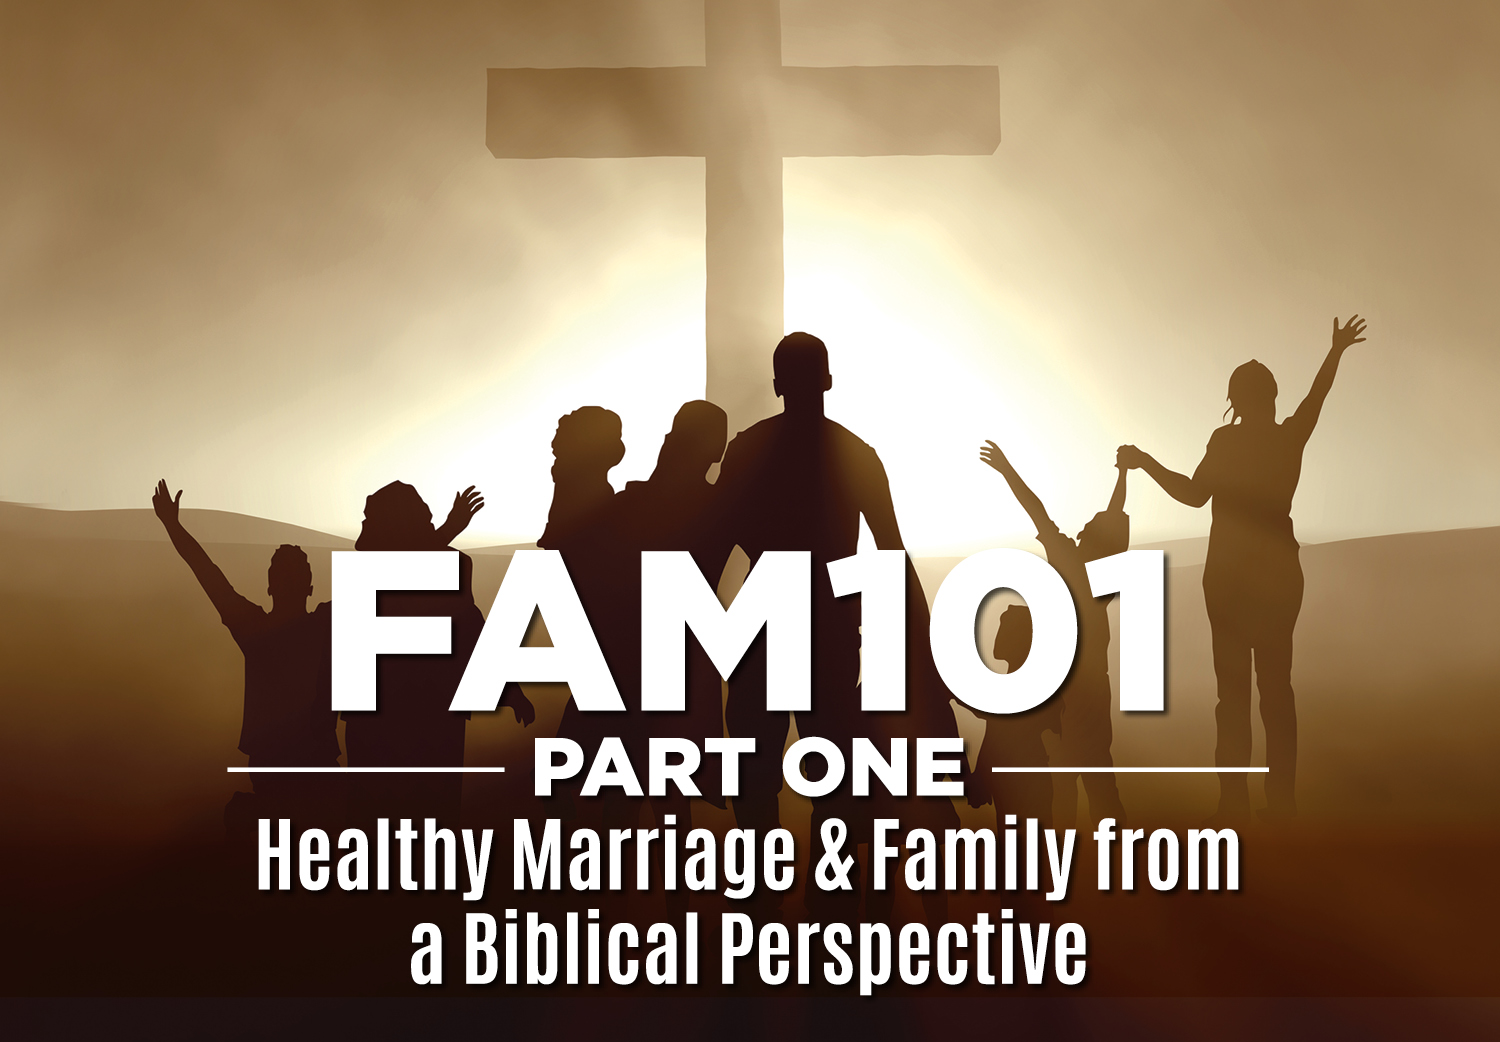 FAM101 Part One: Healthy Marriage & Family from a Biblical Perspective